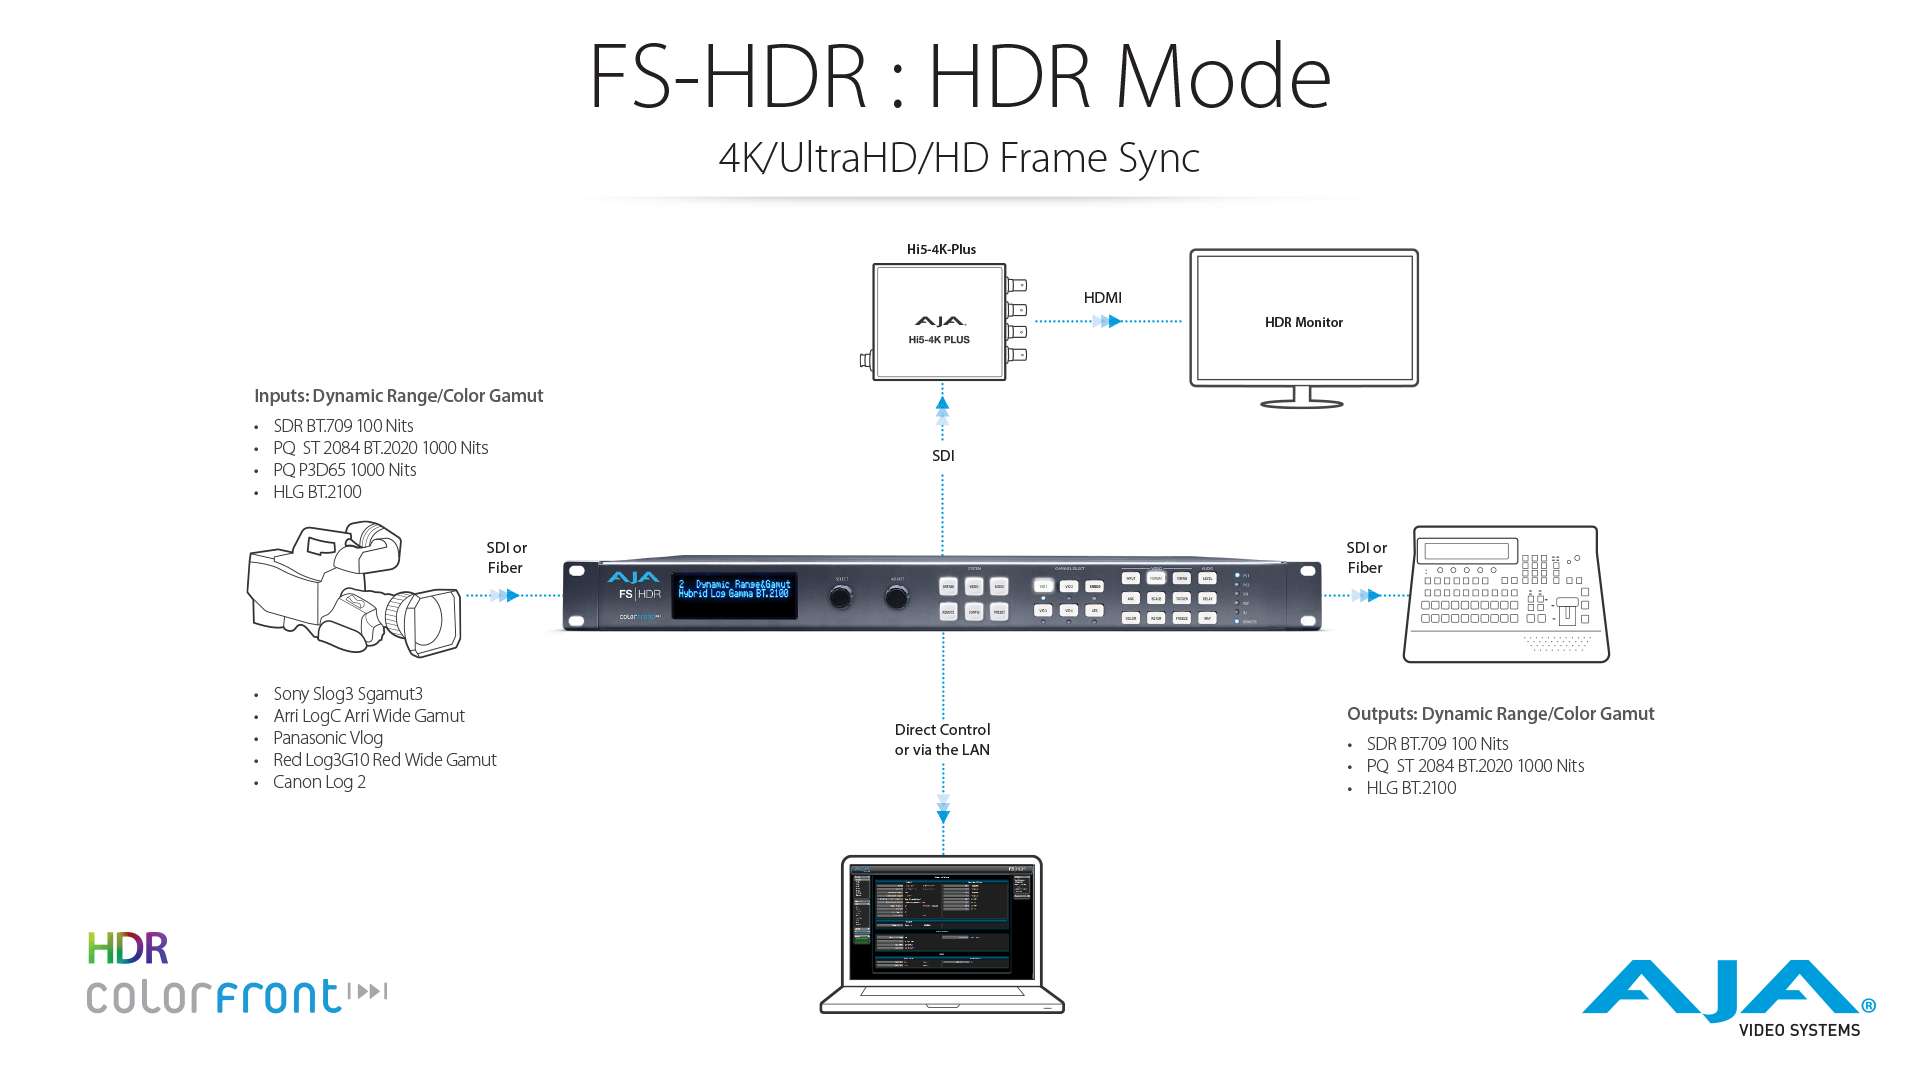 FS-HDR : HDR Mode